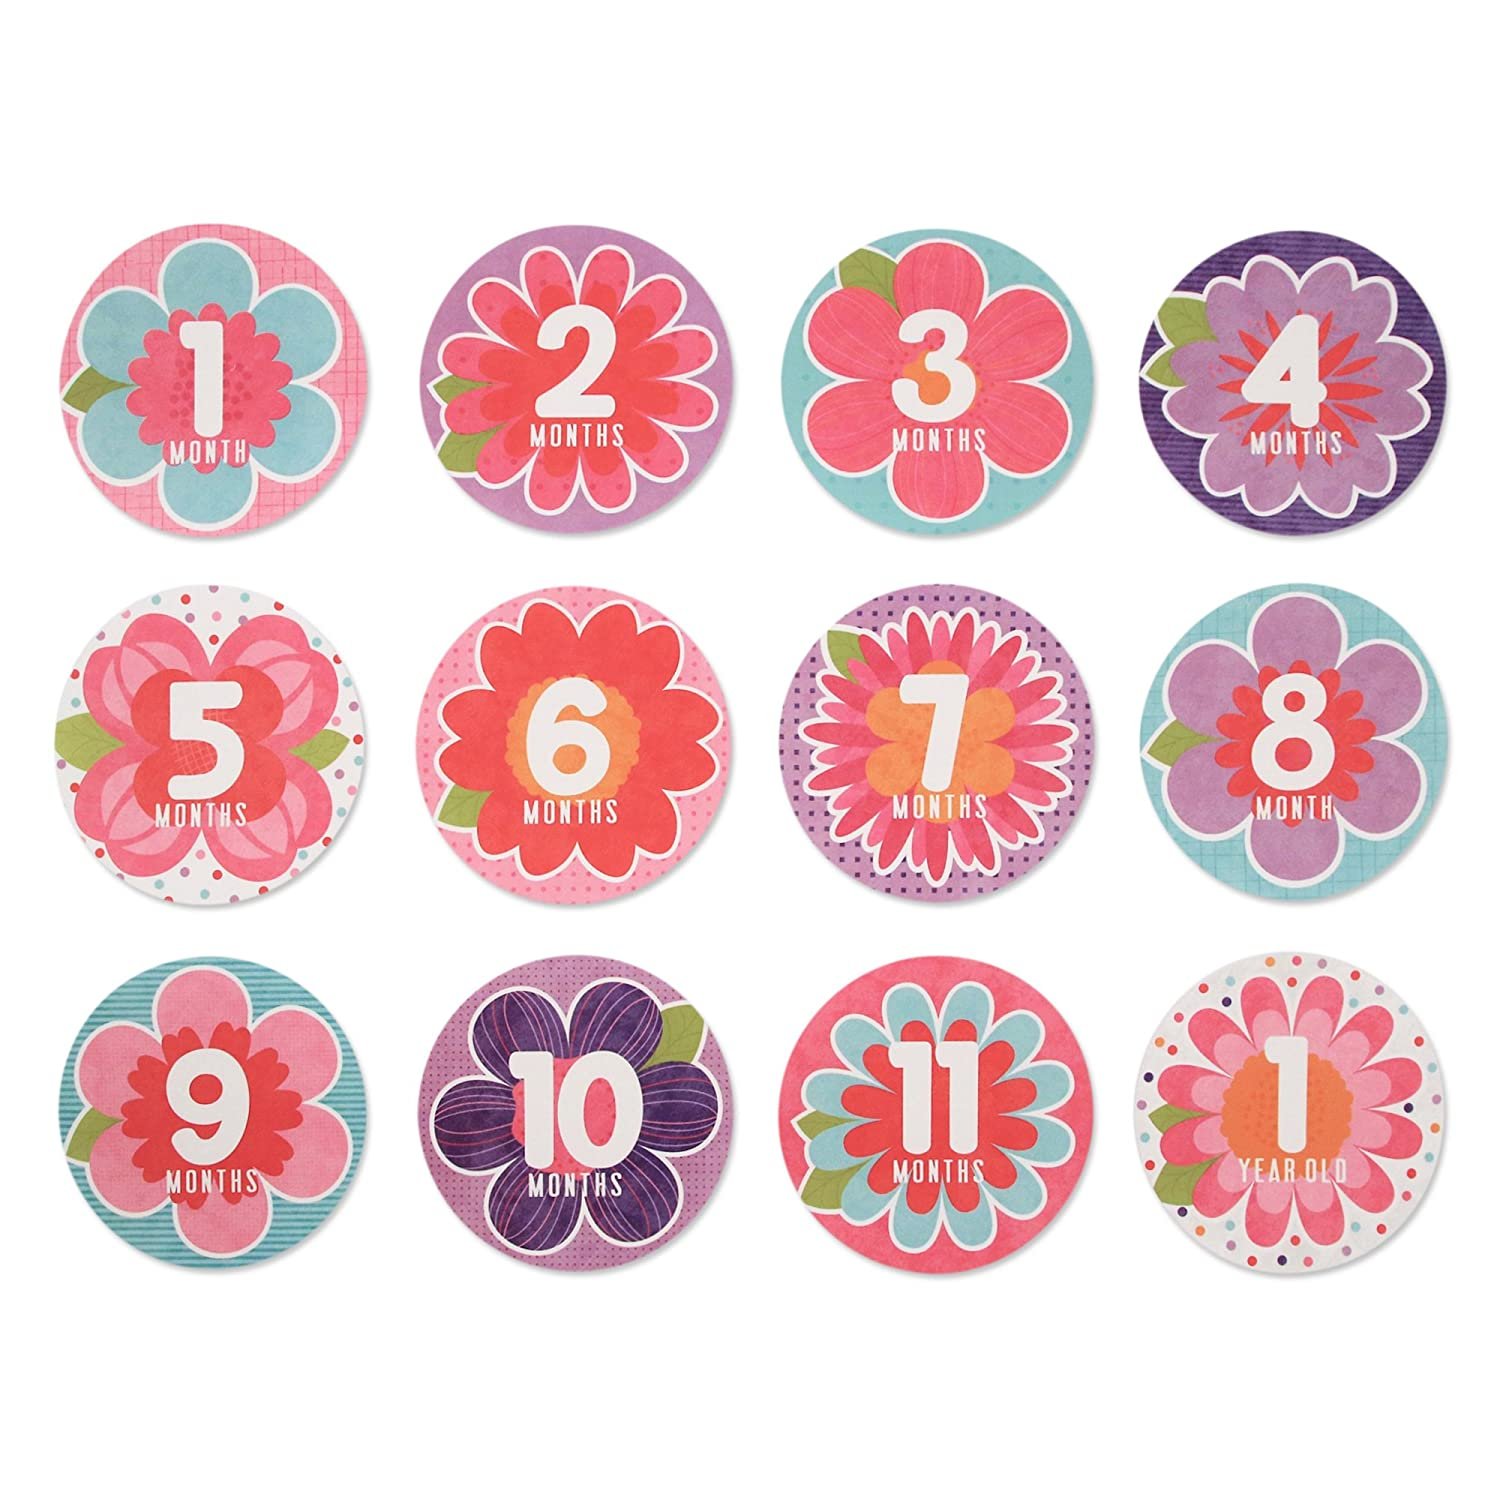 Rising Star Baby Girls Milestone Belly Stickers Gift Set